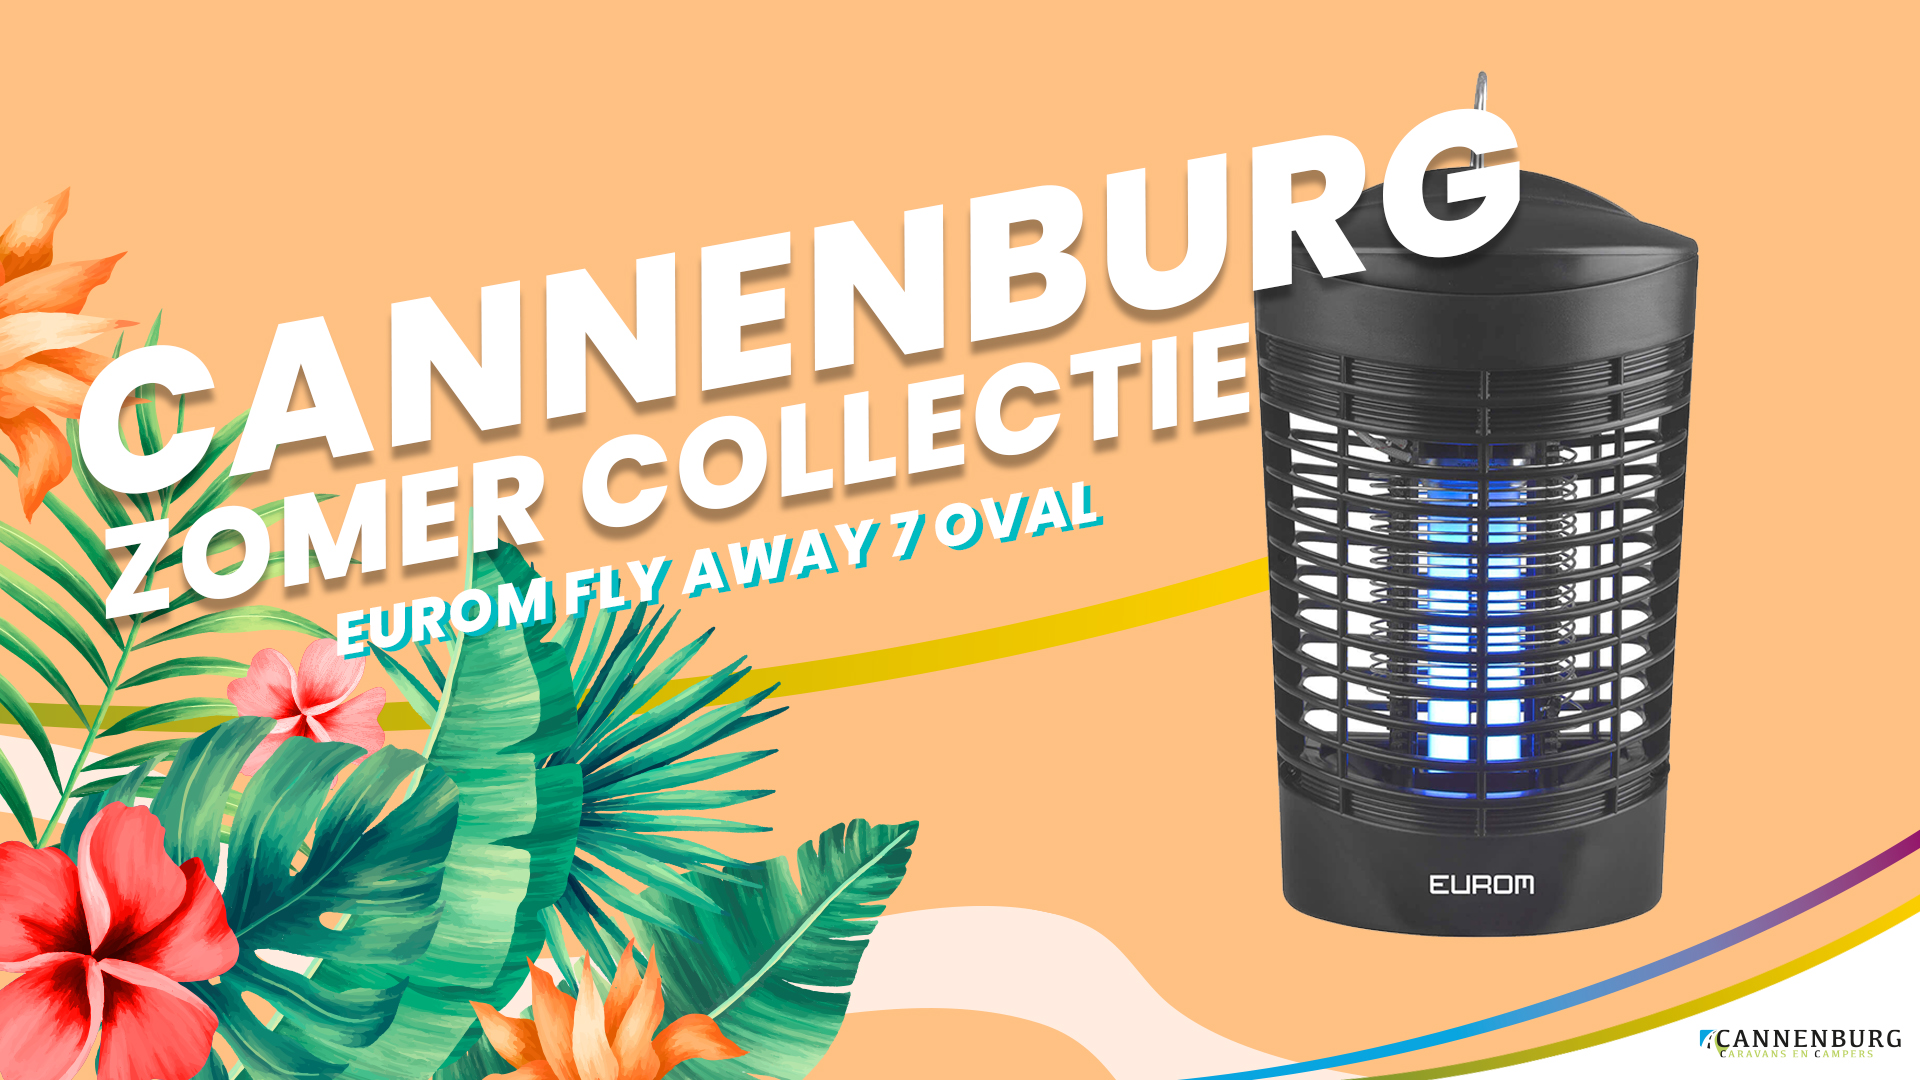 Zomer collectie cannenburg 2020 EUROM FLY AWAY